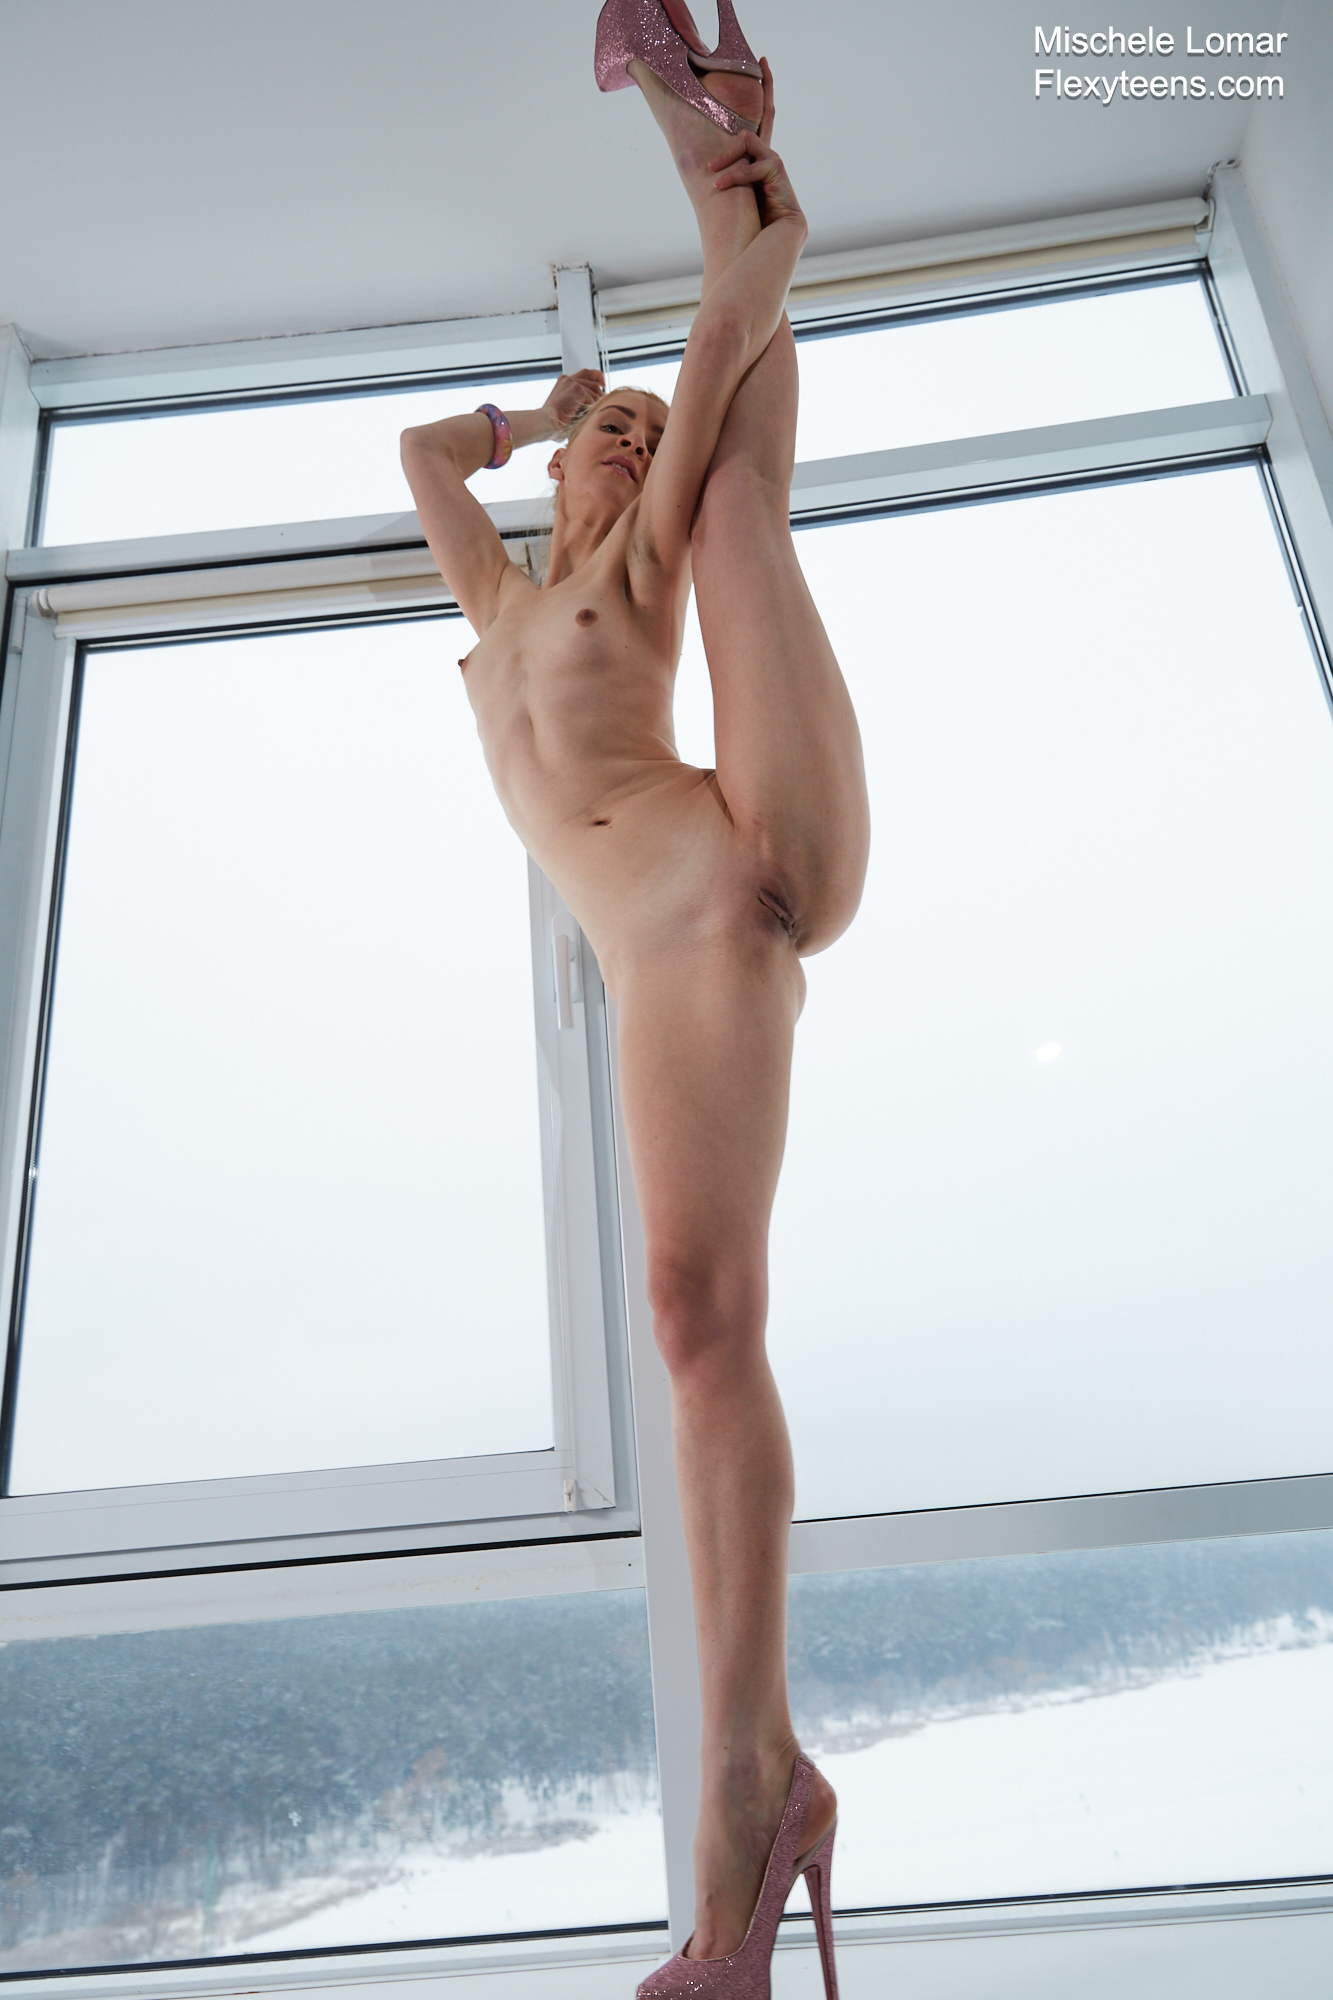 Blonde Mischele Lomar performs sexy splits and bends just ...